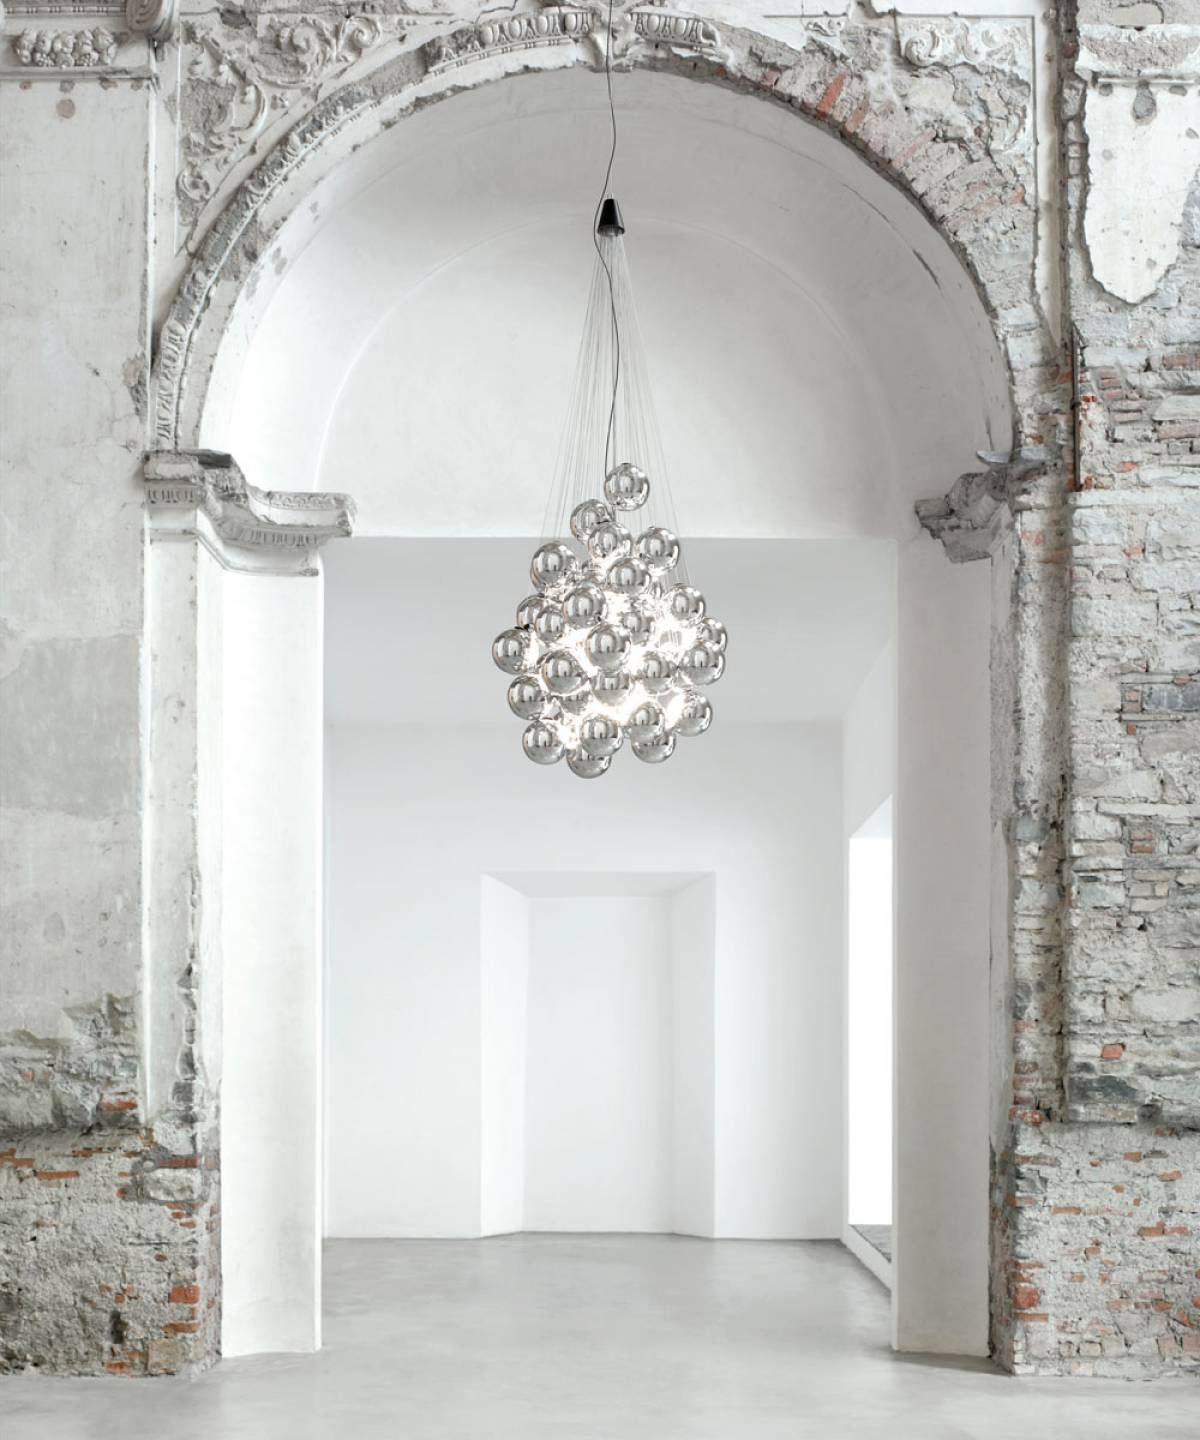 4 Stochastic suspension lamp Luceplan